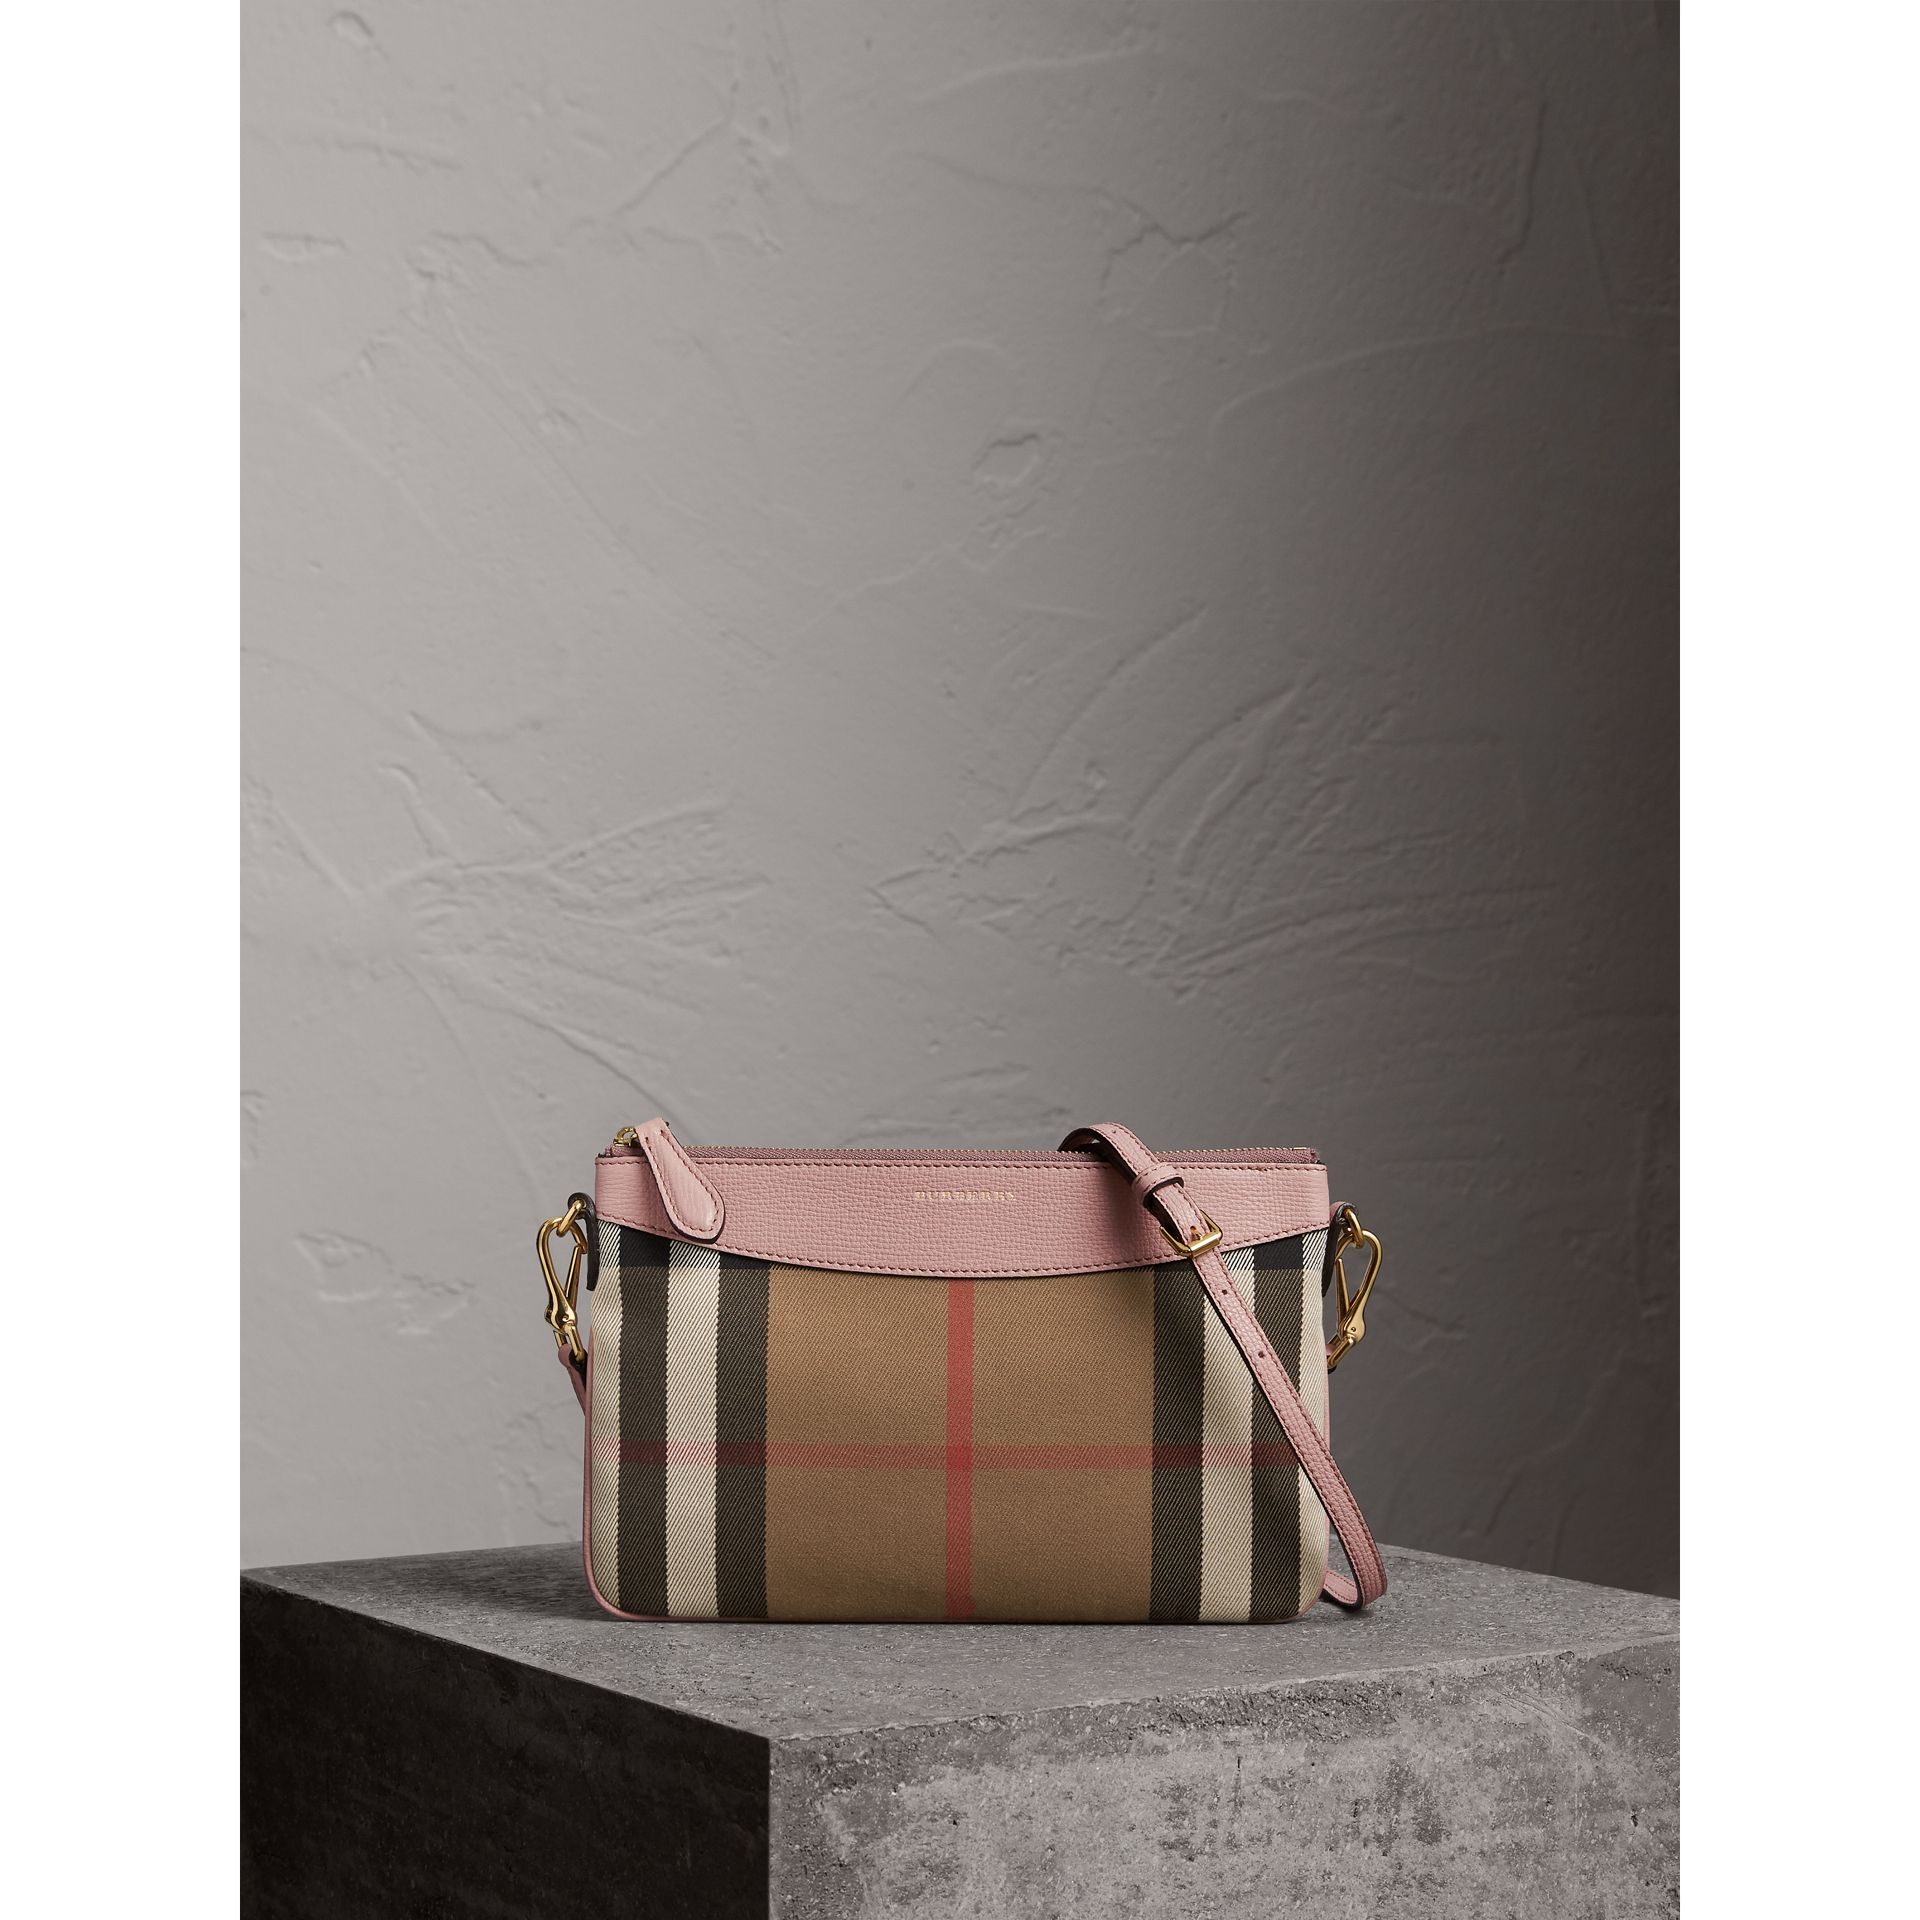 House Check and Leather Clutch Bag in Pale Orchid - Women | Burberry United States - gallery image 1